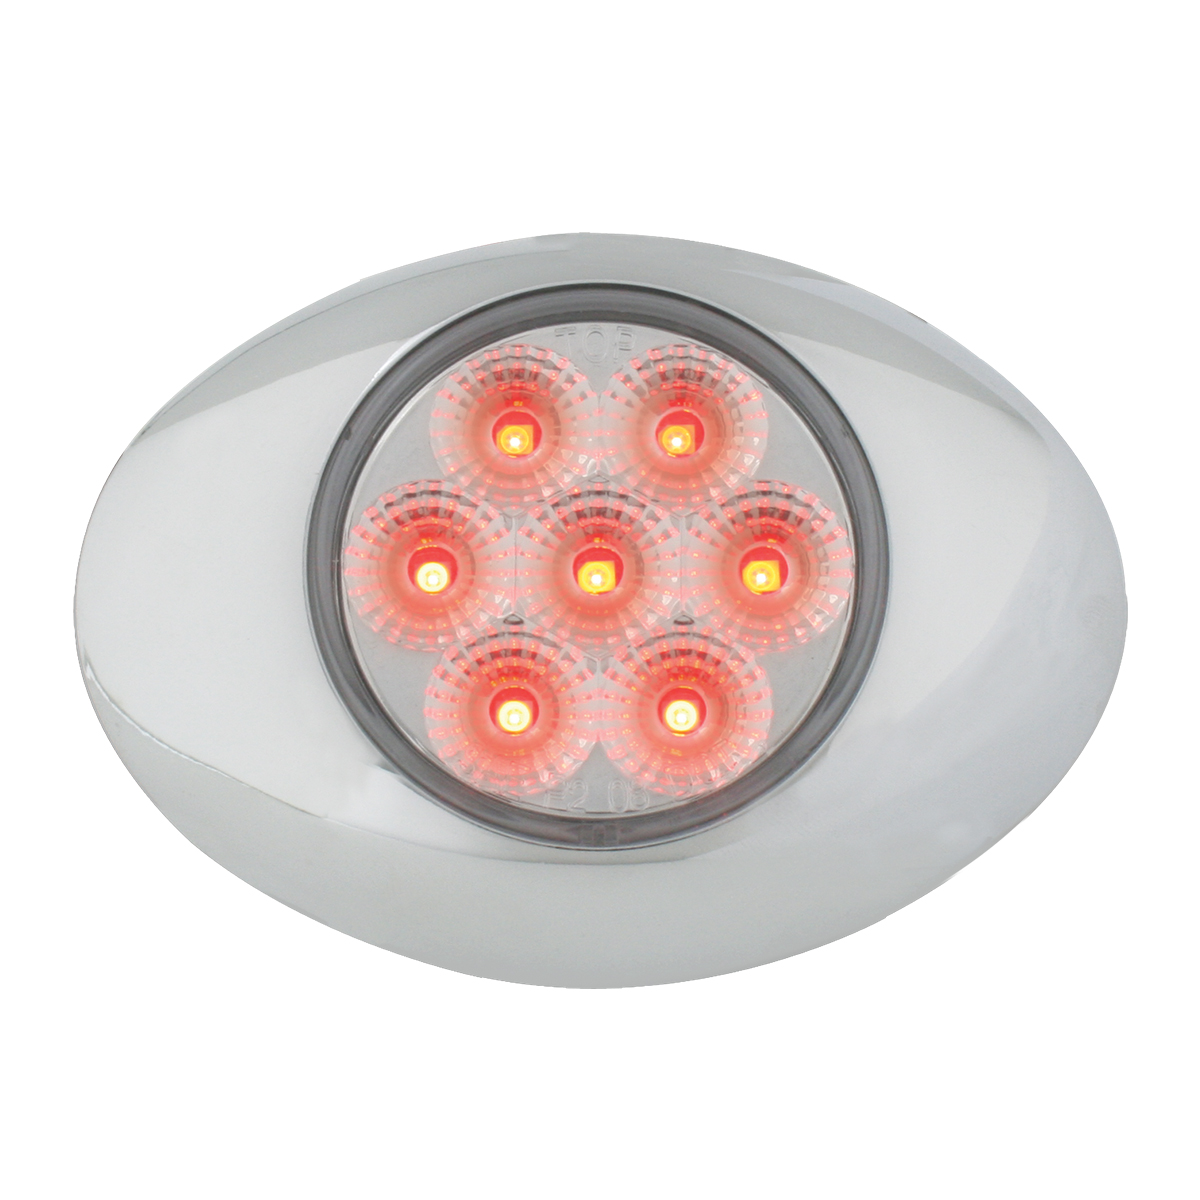 Small Spyder LED Light in Red/Clear with Chrome Bezel